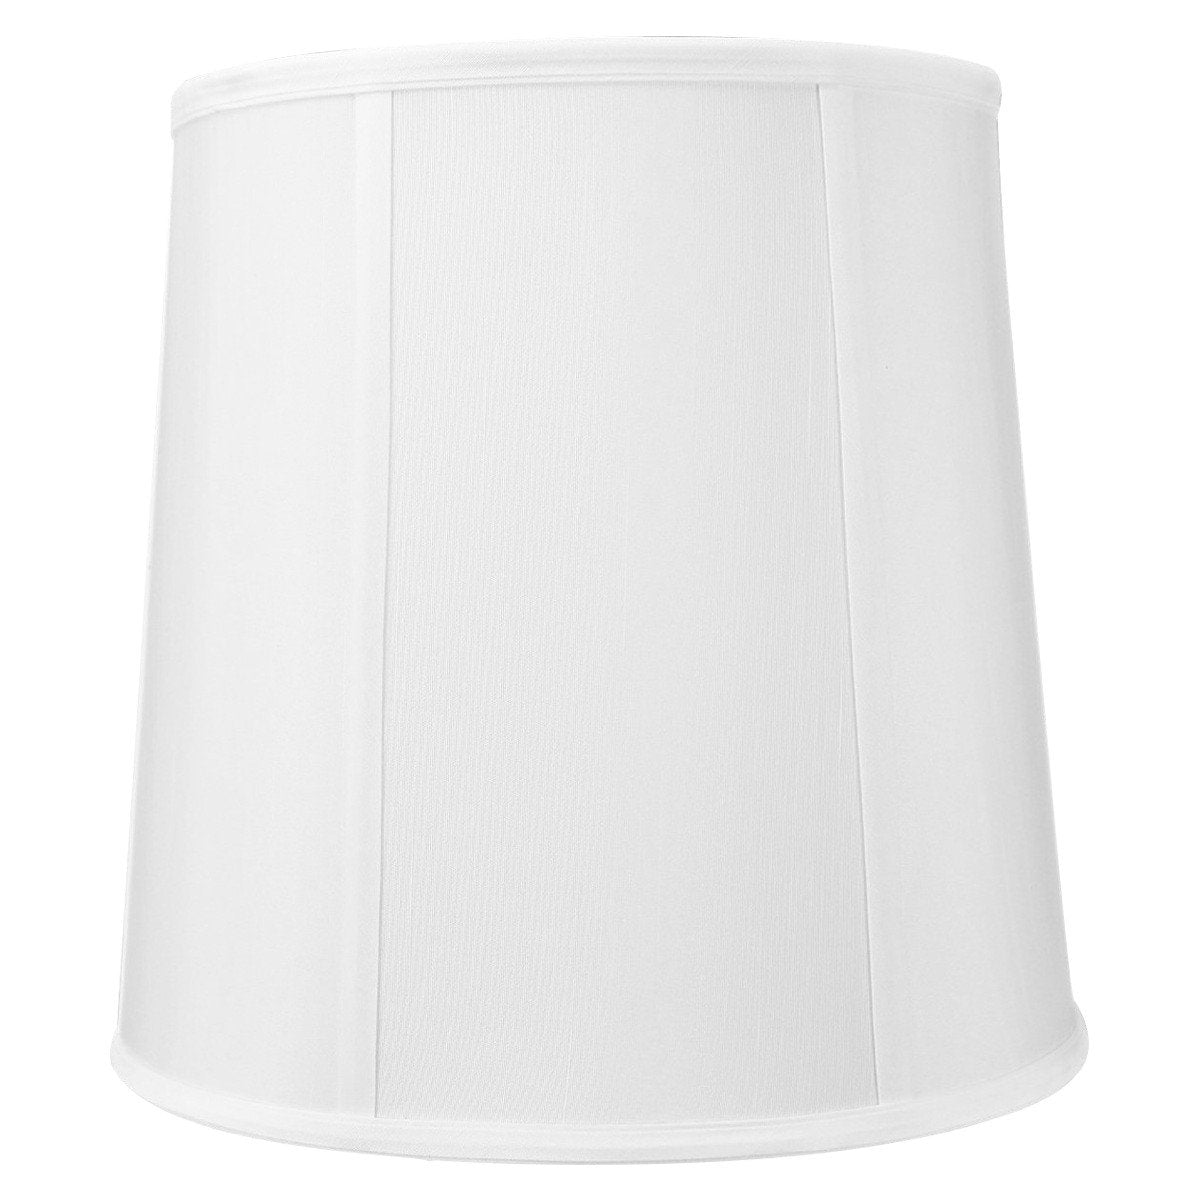 8x10x10 White Linen Fabric Drum Lampshade